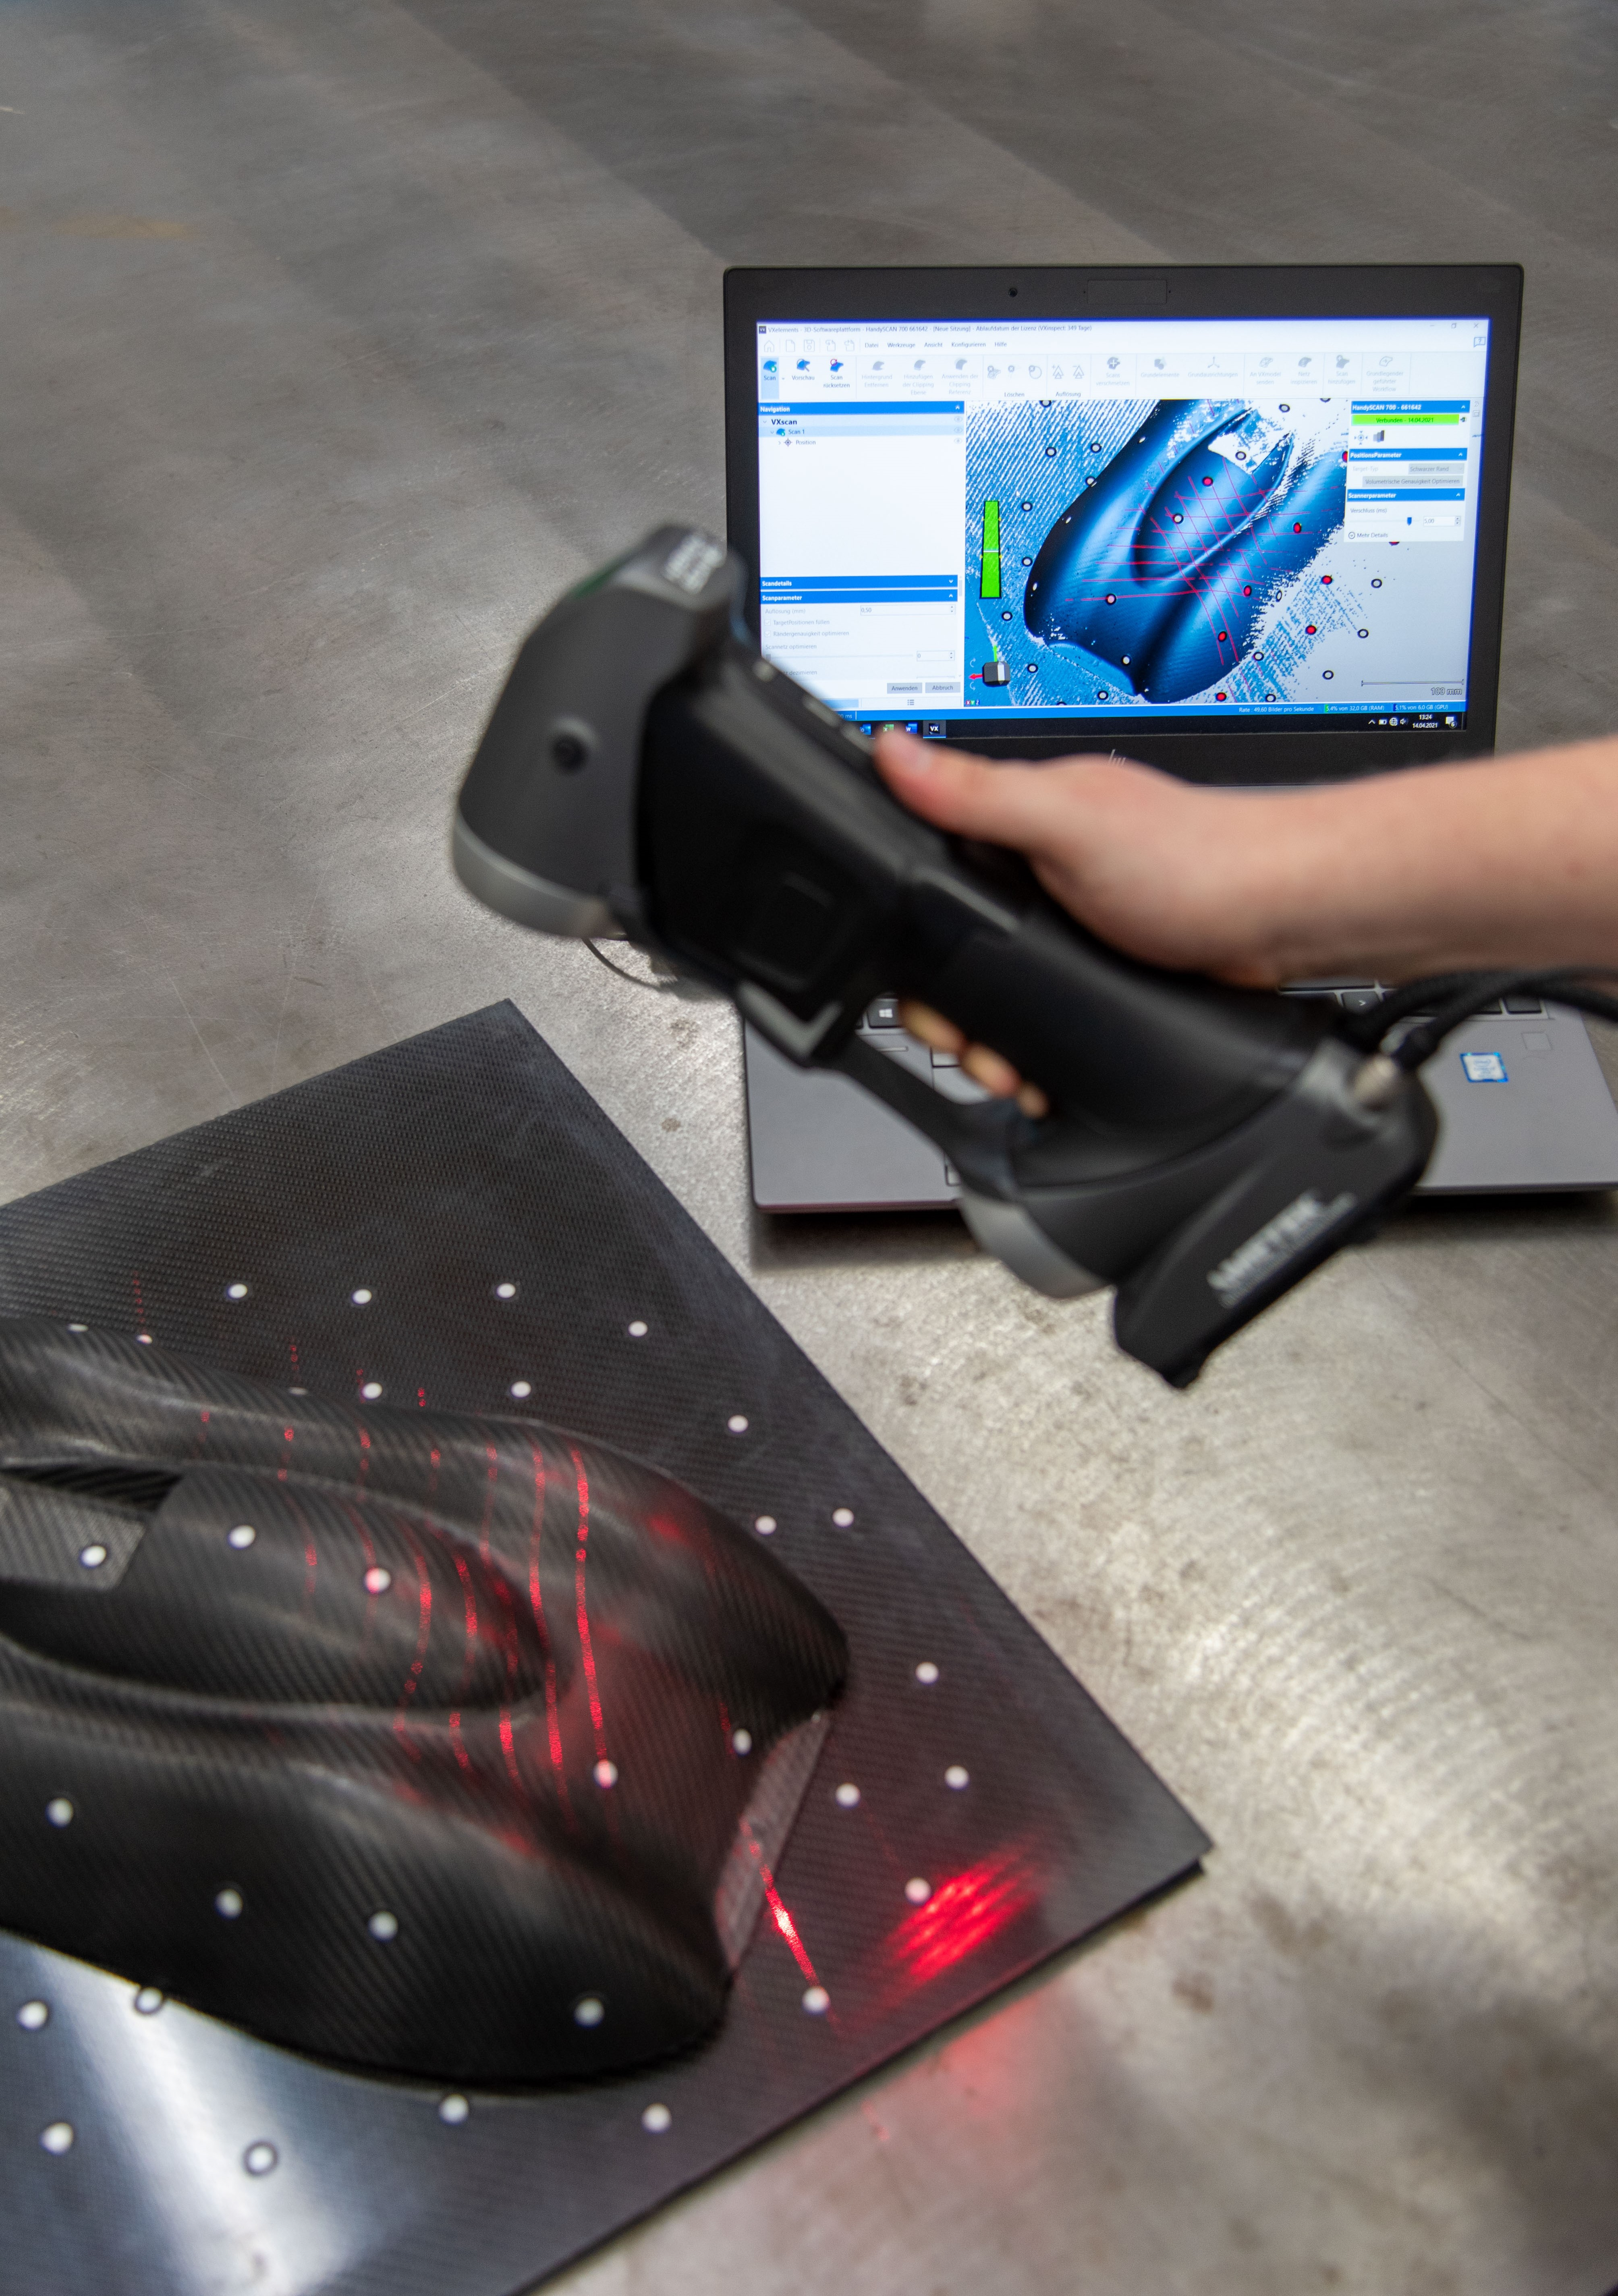 Employee using HandySCAN 3D SILVER series scanner to scan a carbon fber car part on a table in front of laptop displaying in real-time in VXelements